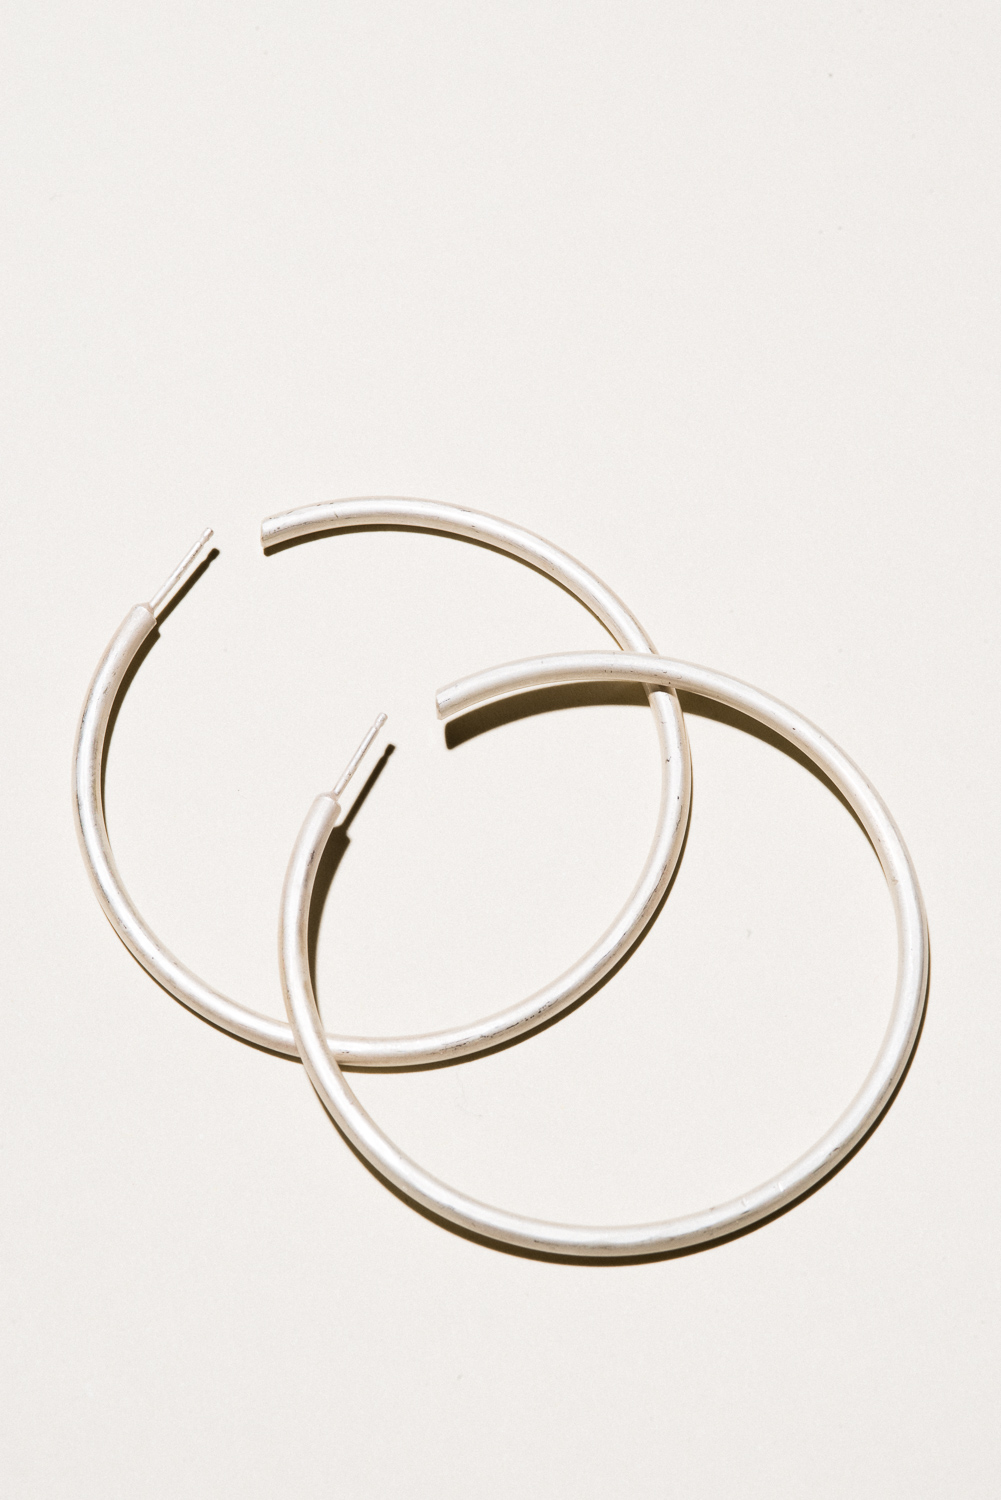 XL Silver Classic Hoops - 2.2 in diameterSterling Silver, Raw FinishHand Smithed$150